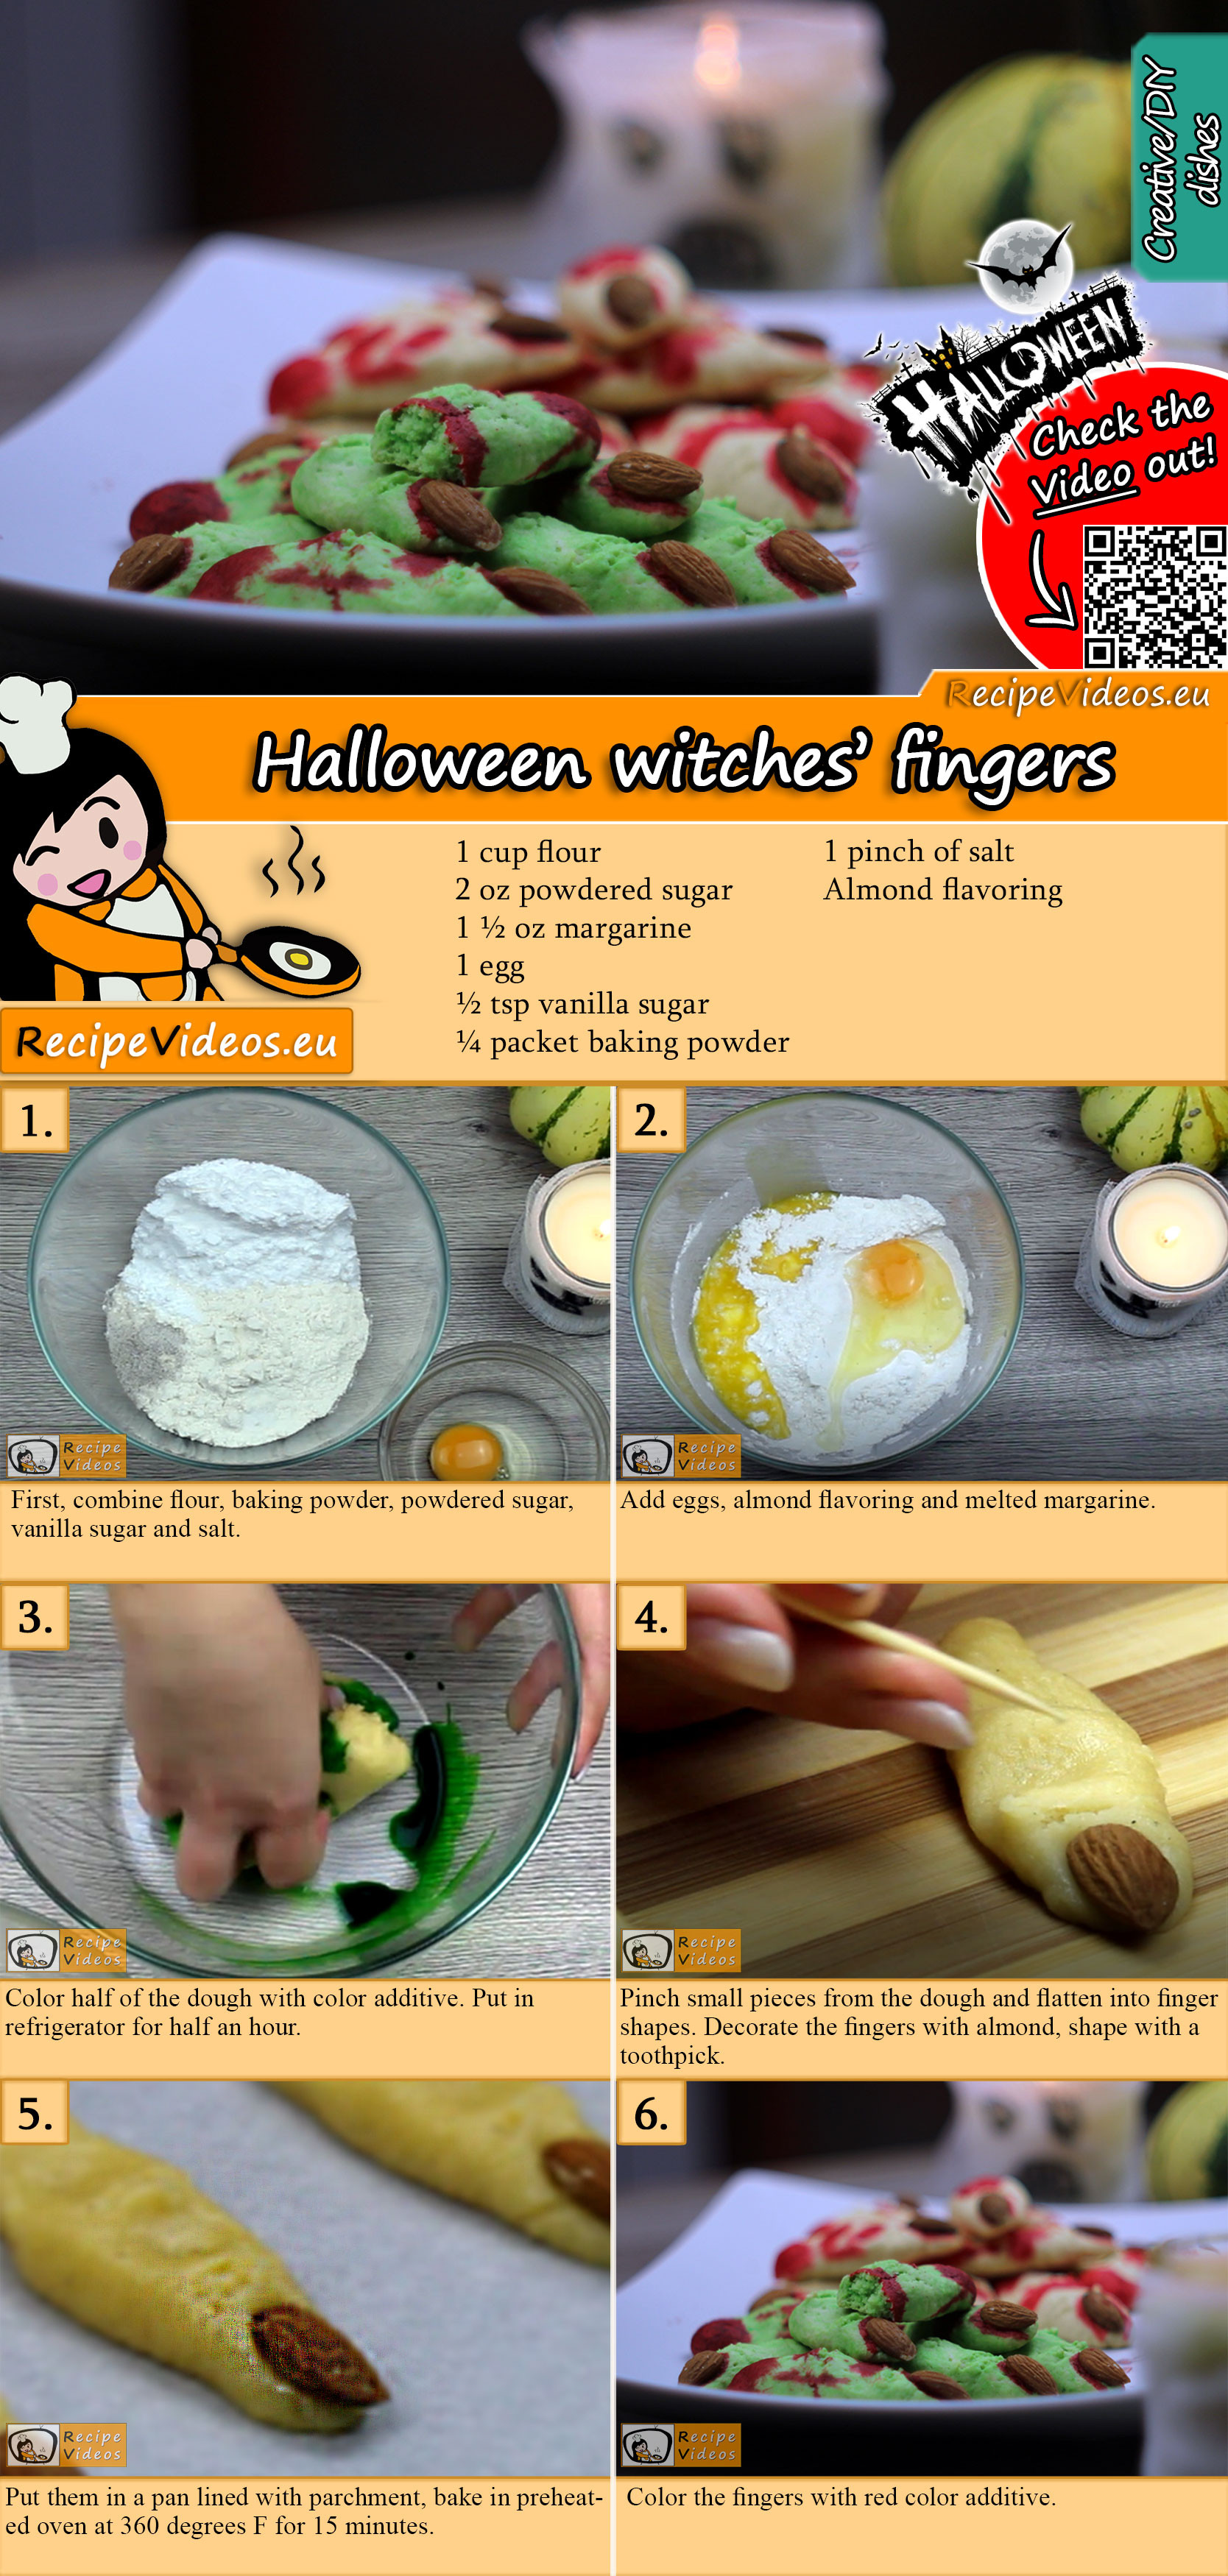 Halloween witches' fingers recipe with video